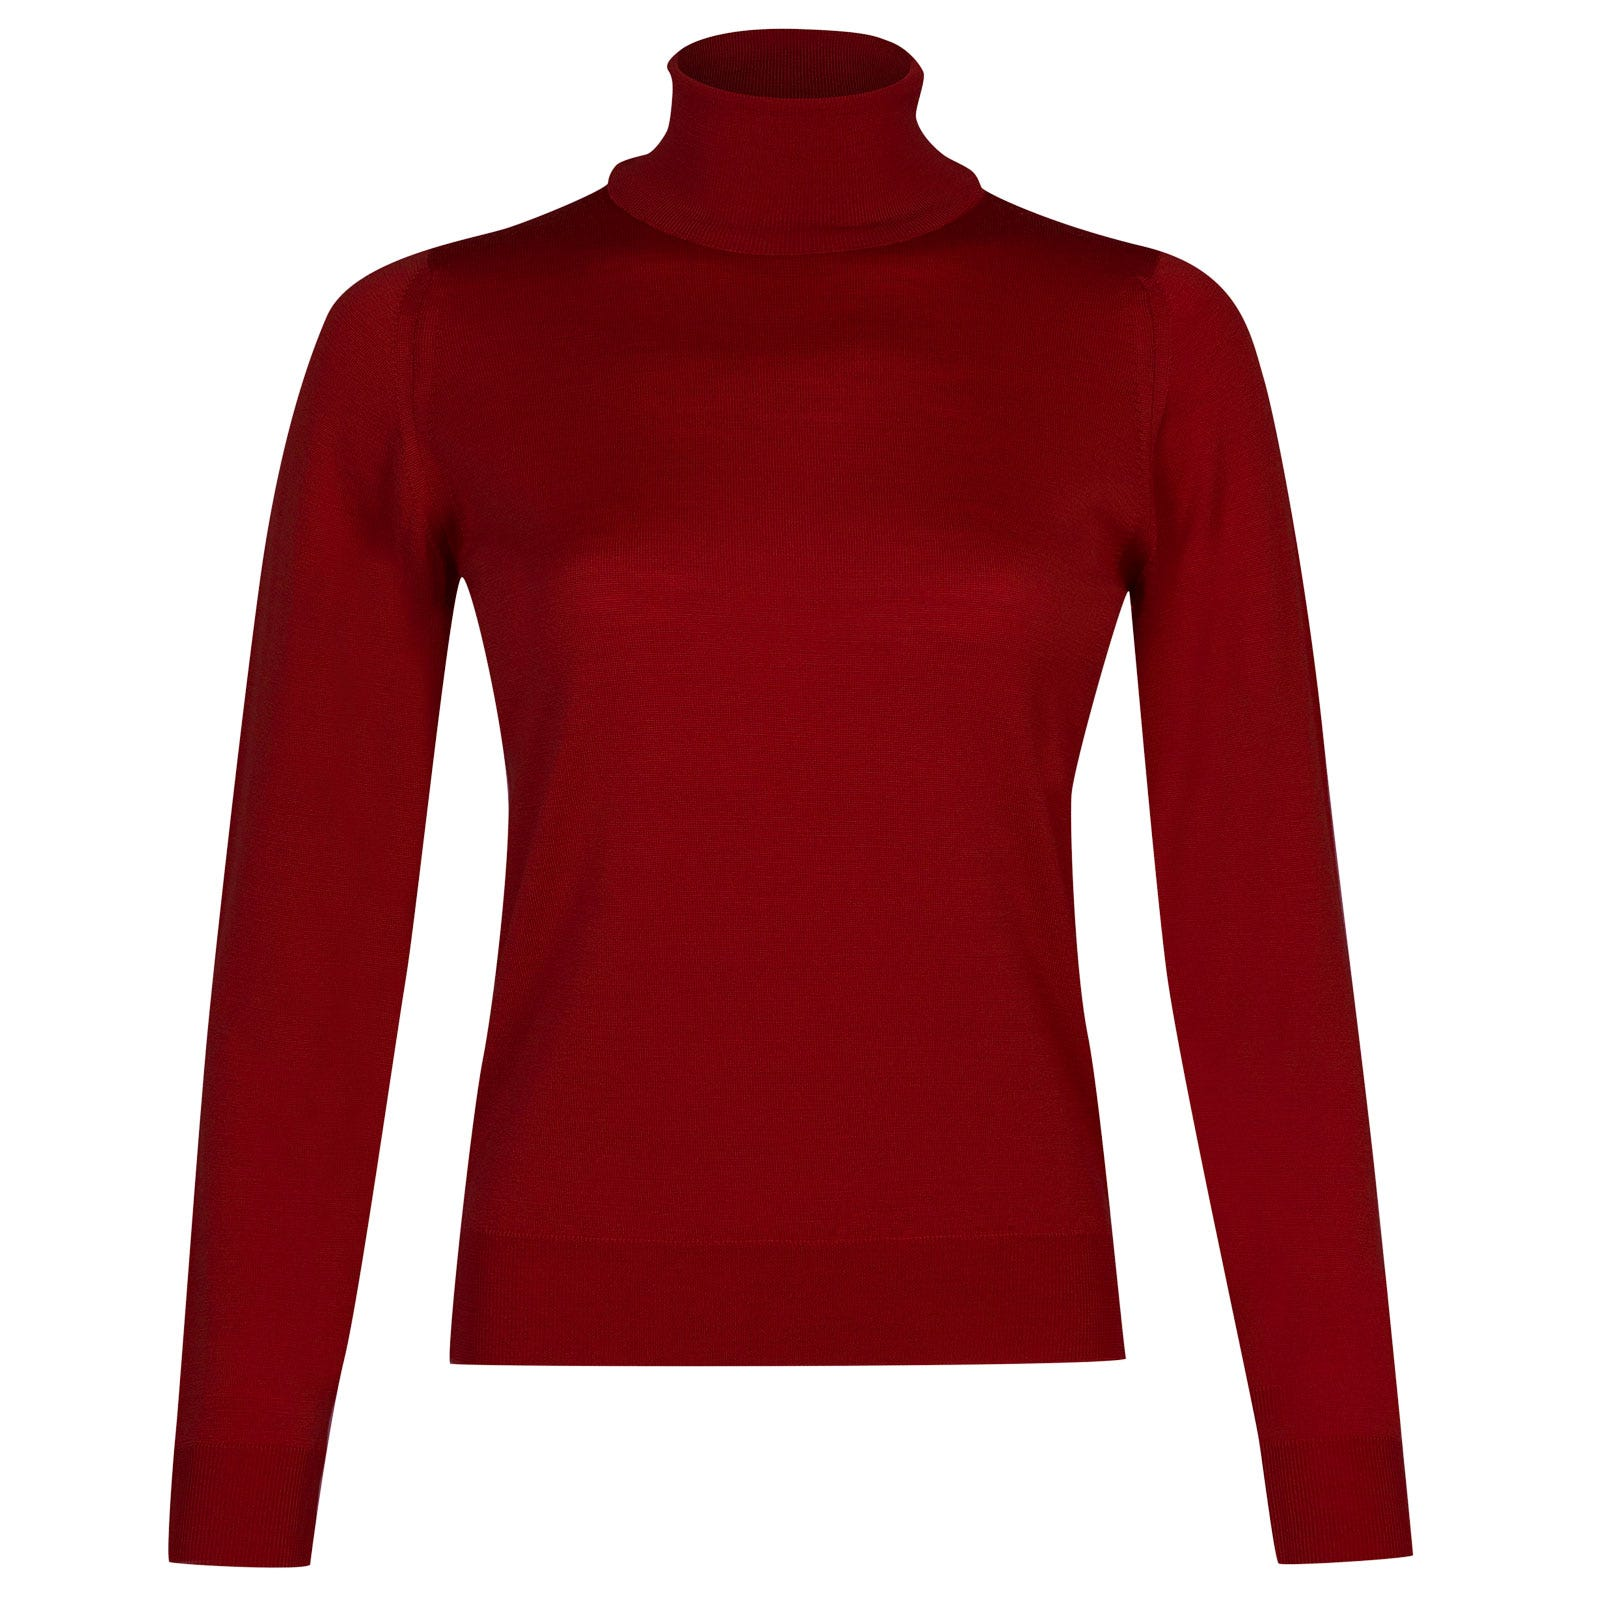 John Smedley siena Merino Wool Sweater in Crimson Forest-L